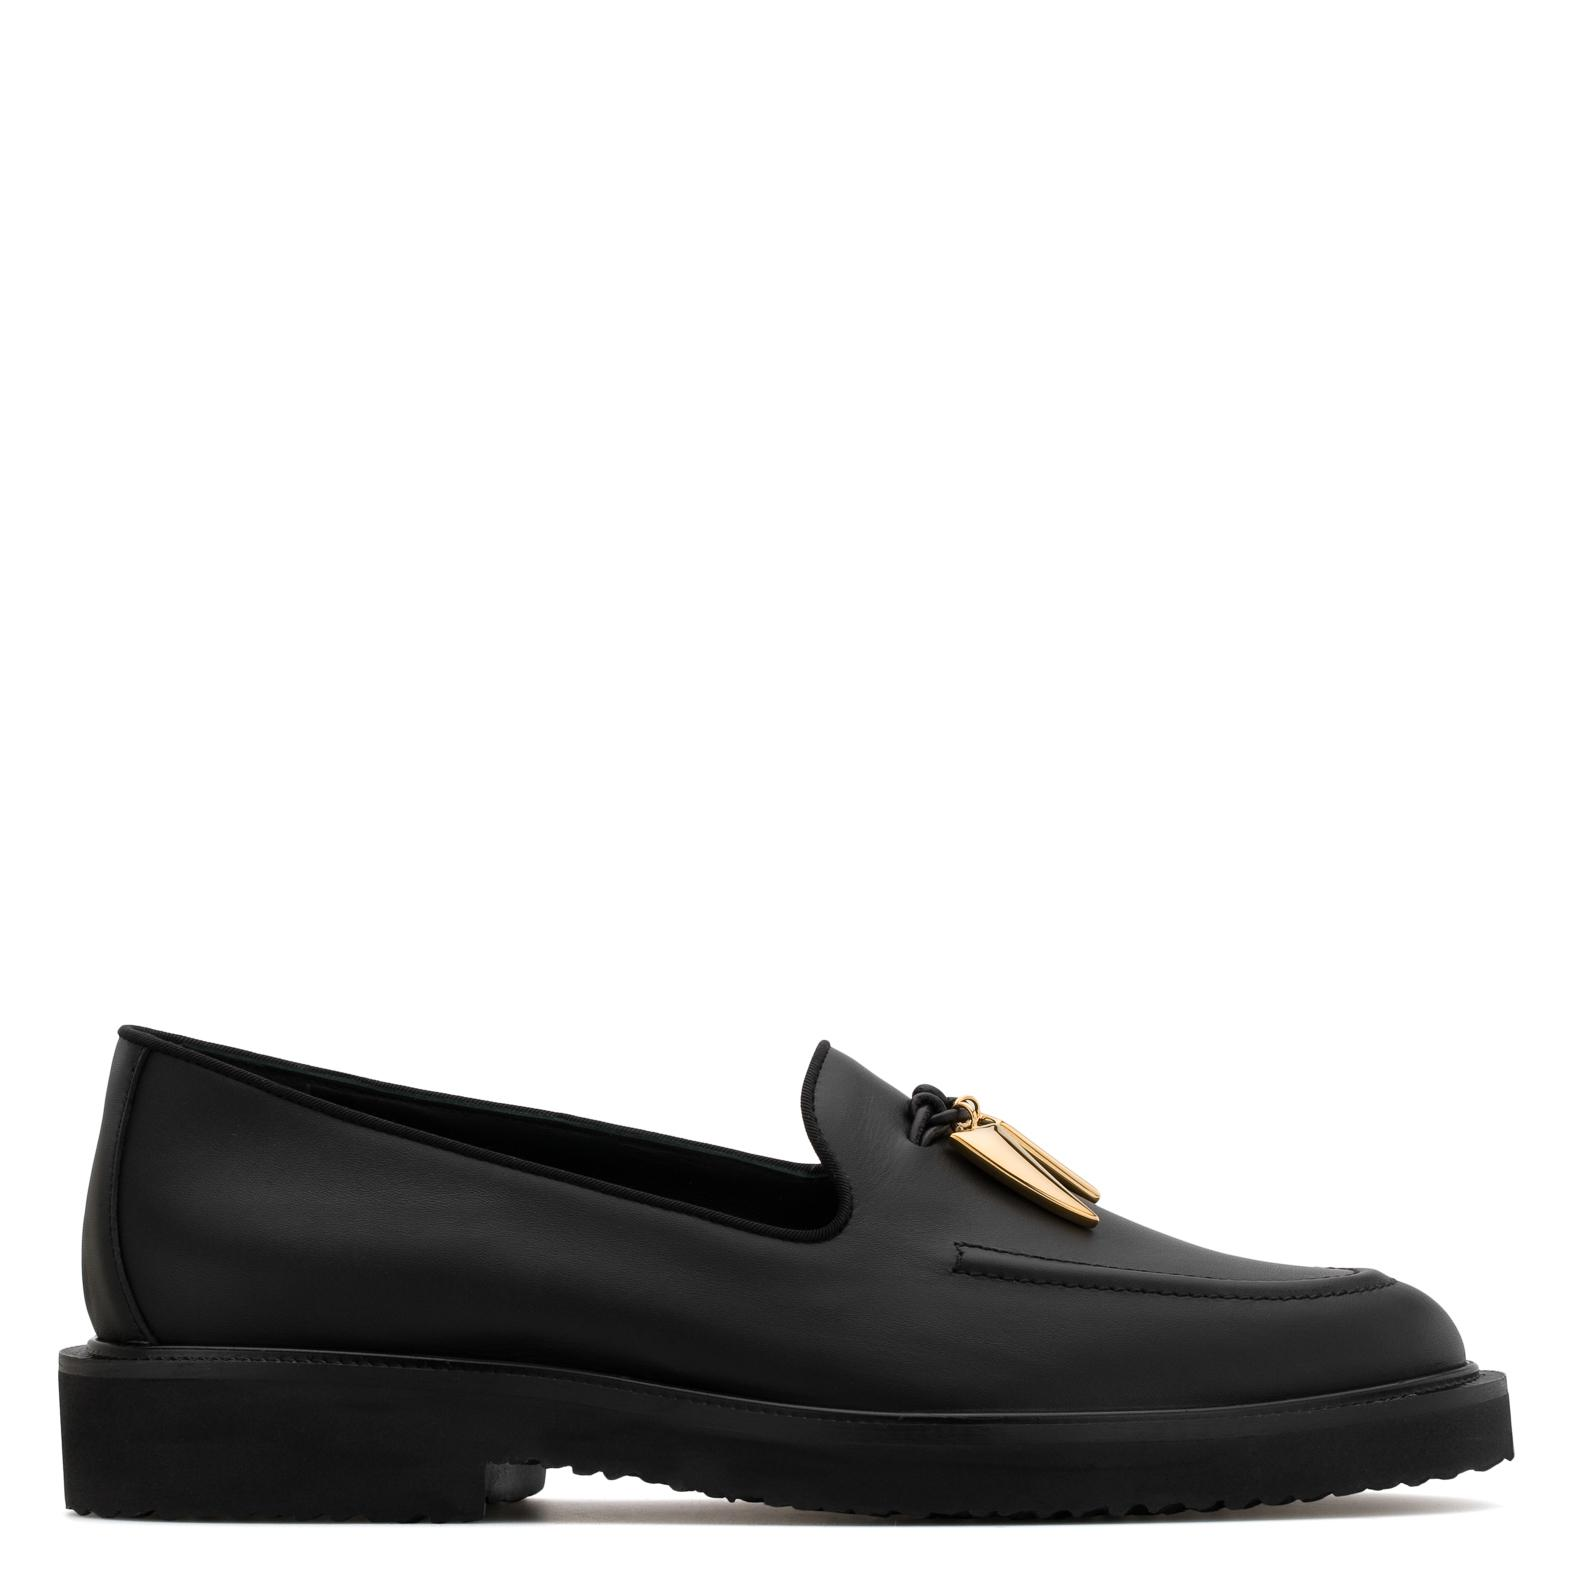 Giuseppe Zanotti Calf leather shoes with gold 'shark tooth' accessory FRED EPEoNOt